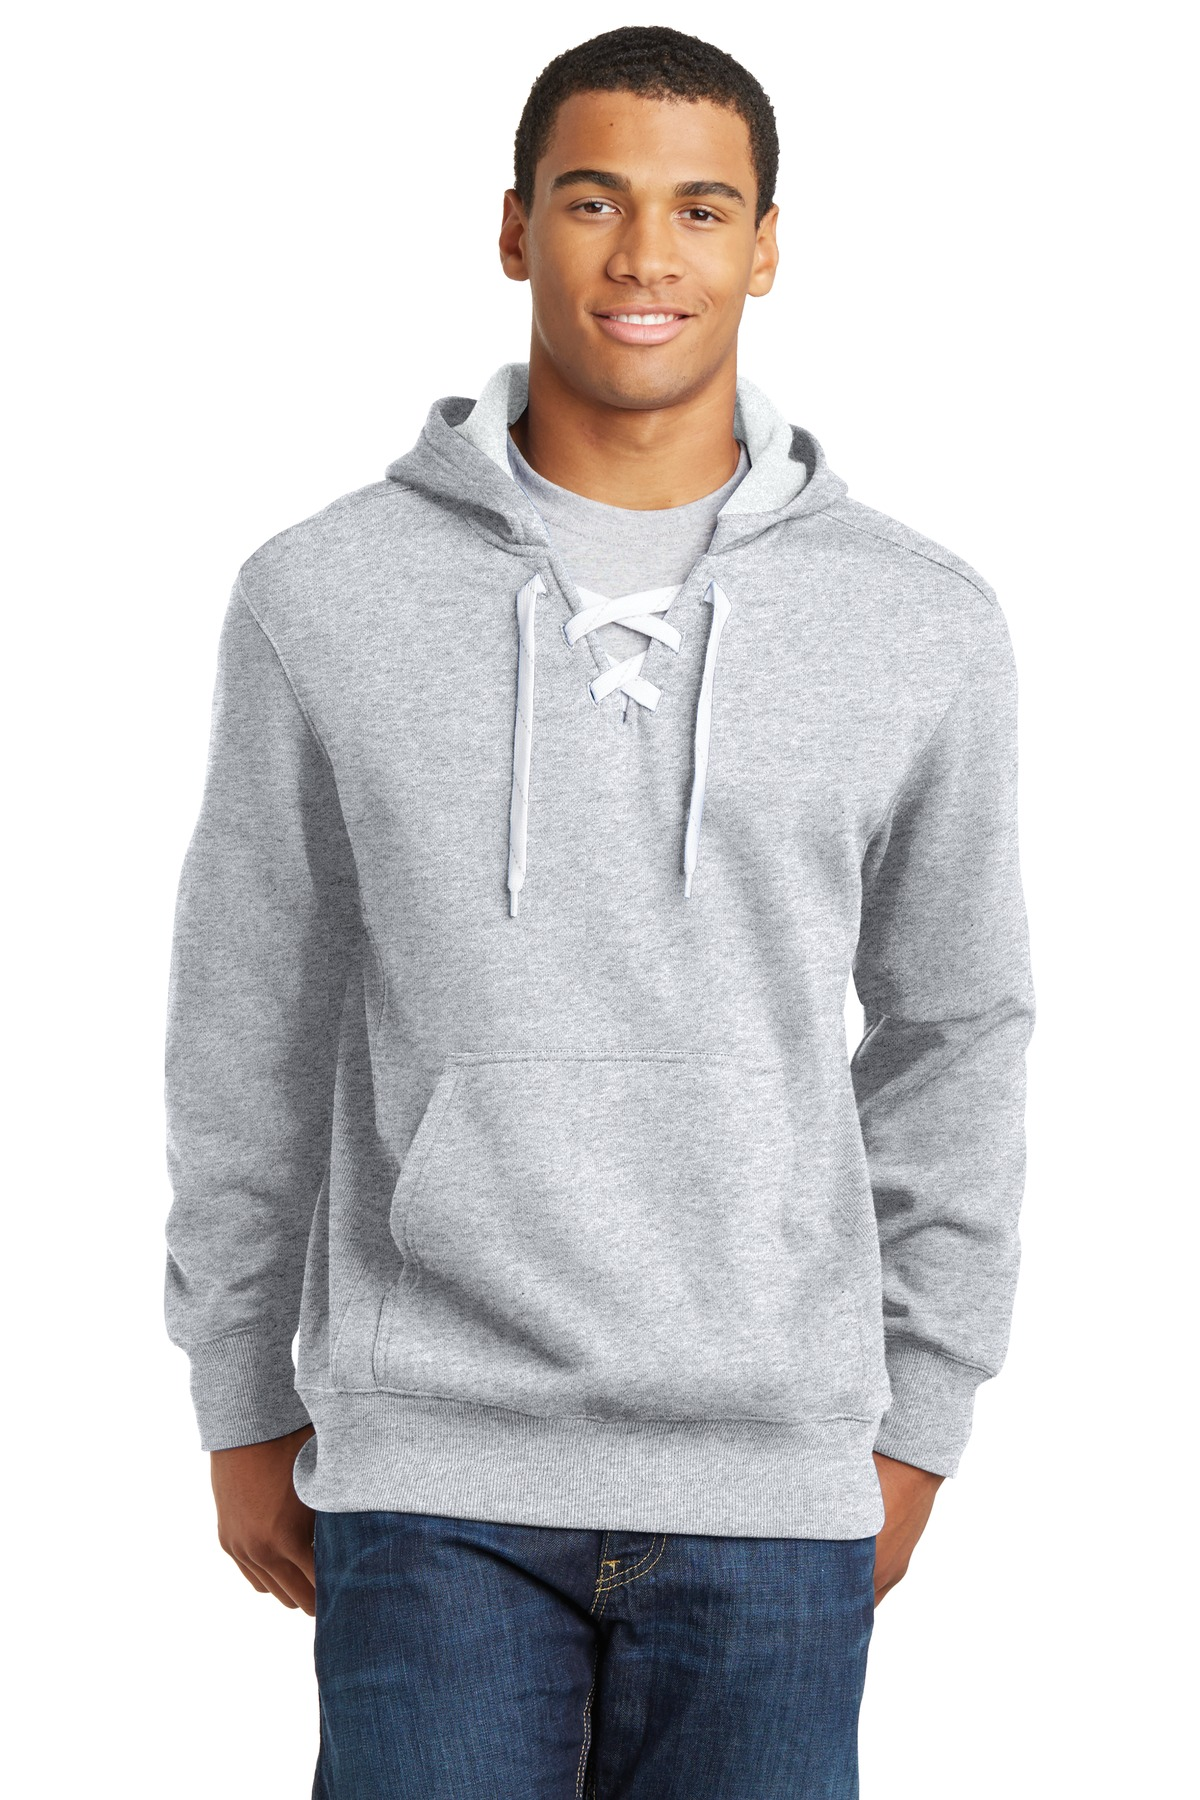 Sport-Tek ®  Lace Up Pullover Hooded Sweatshirt. ST271 - Athletic Heather